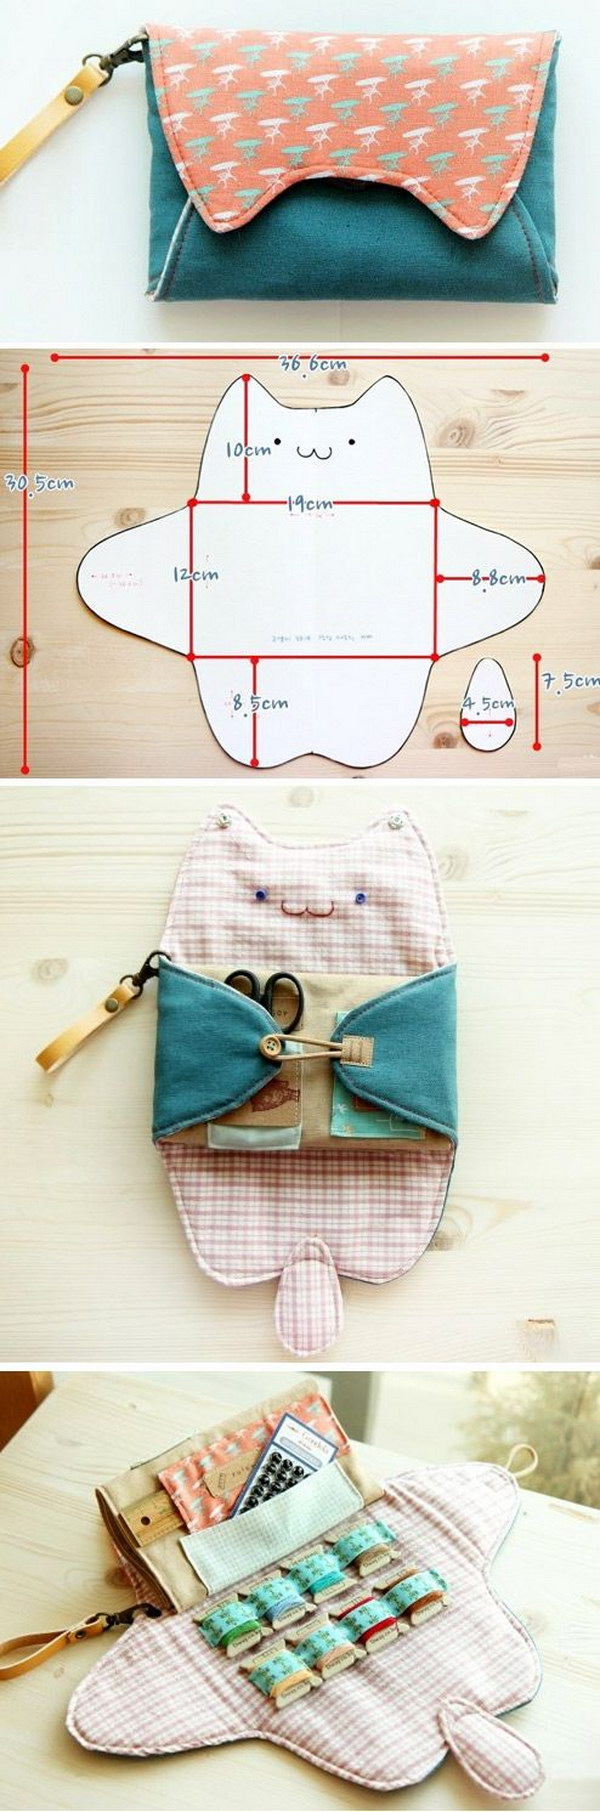 Sewing Purse Bag Organizer